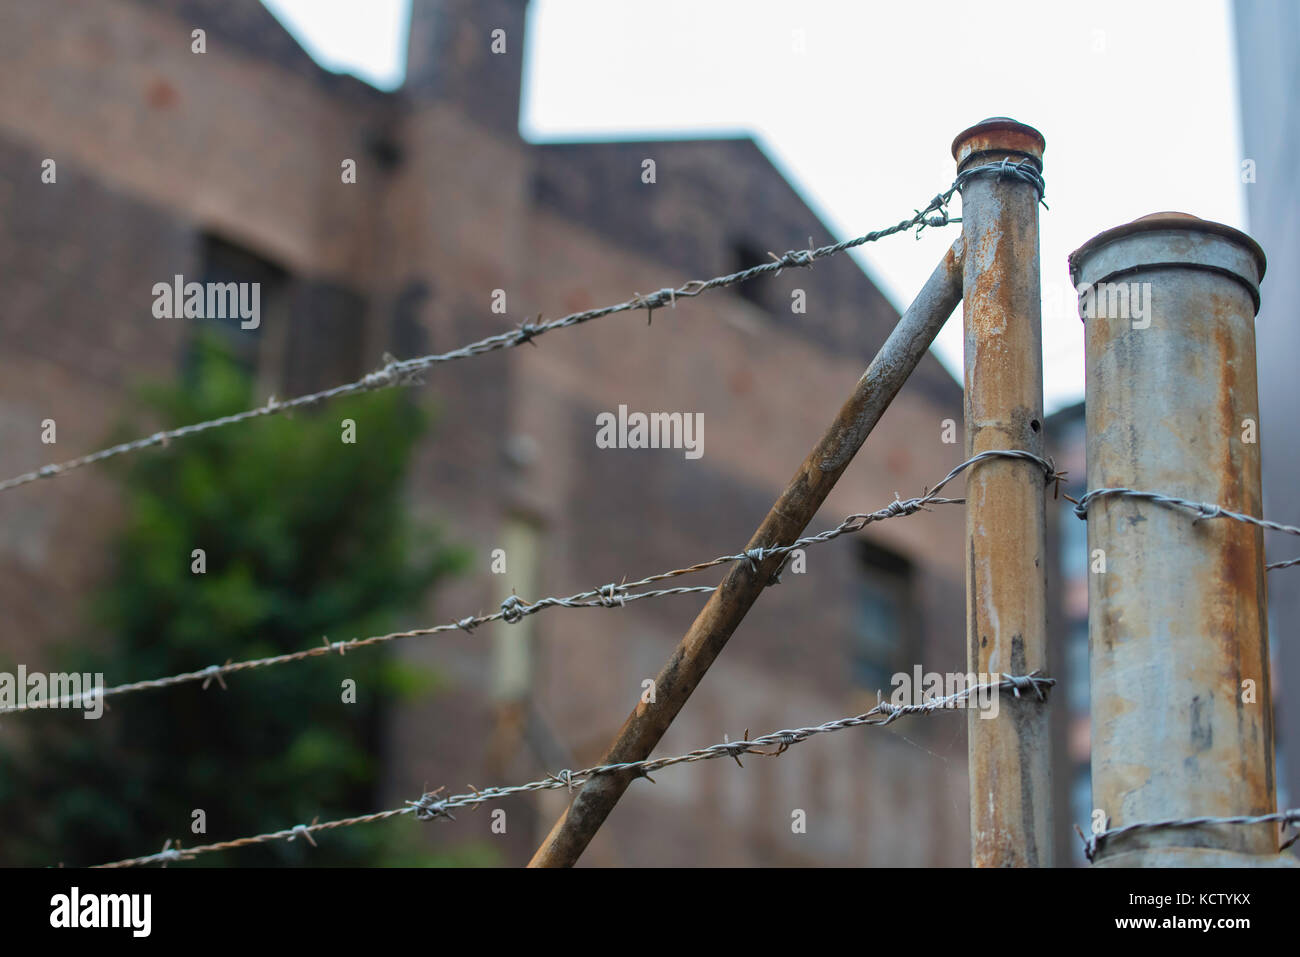 Rusted Barbed Wire Fence Stock Photos & Rusted Barbed Wire Fence ...